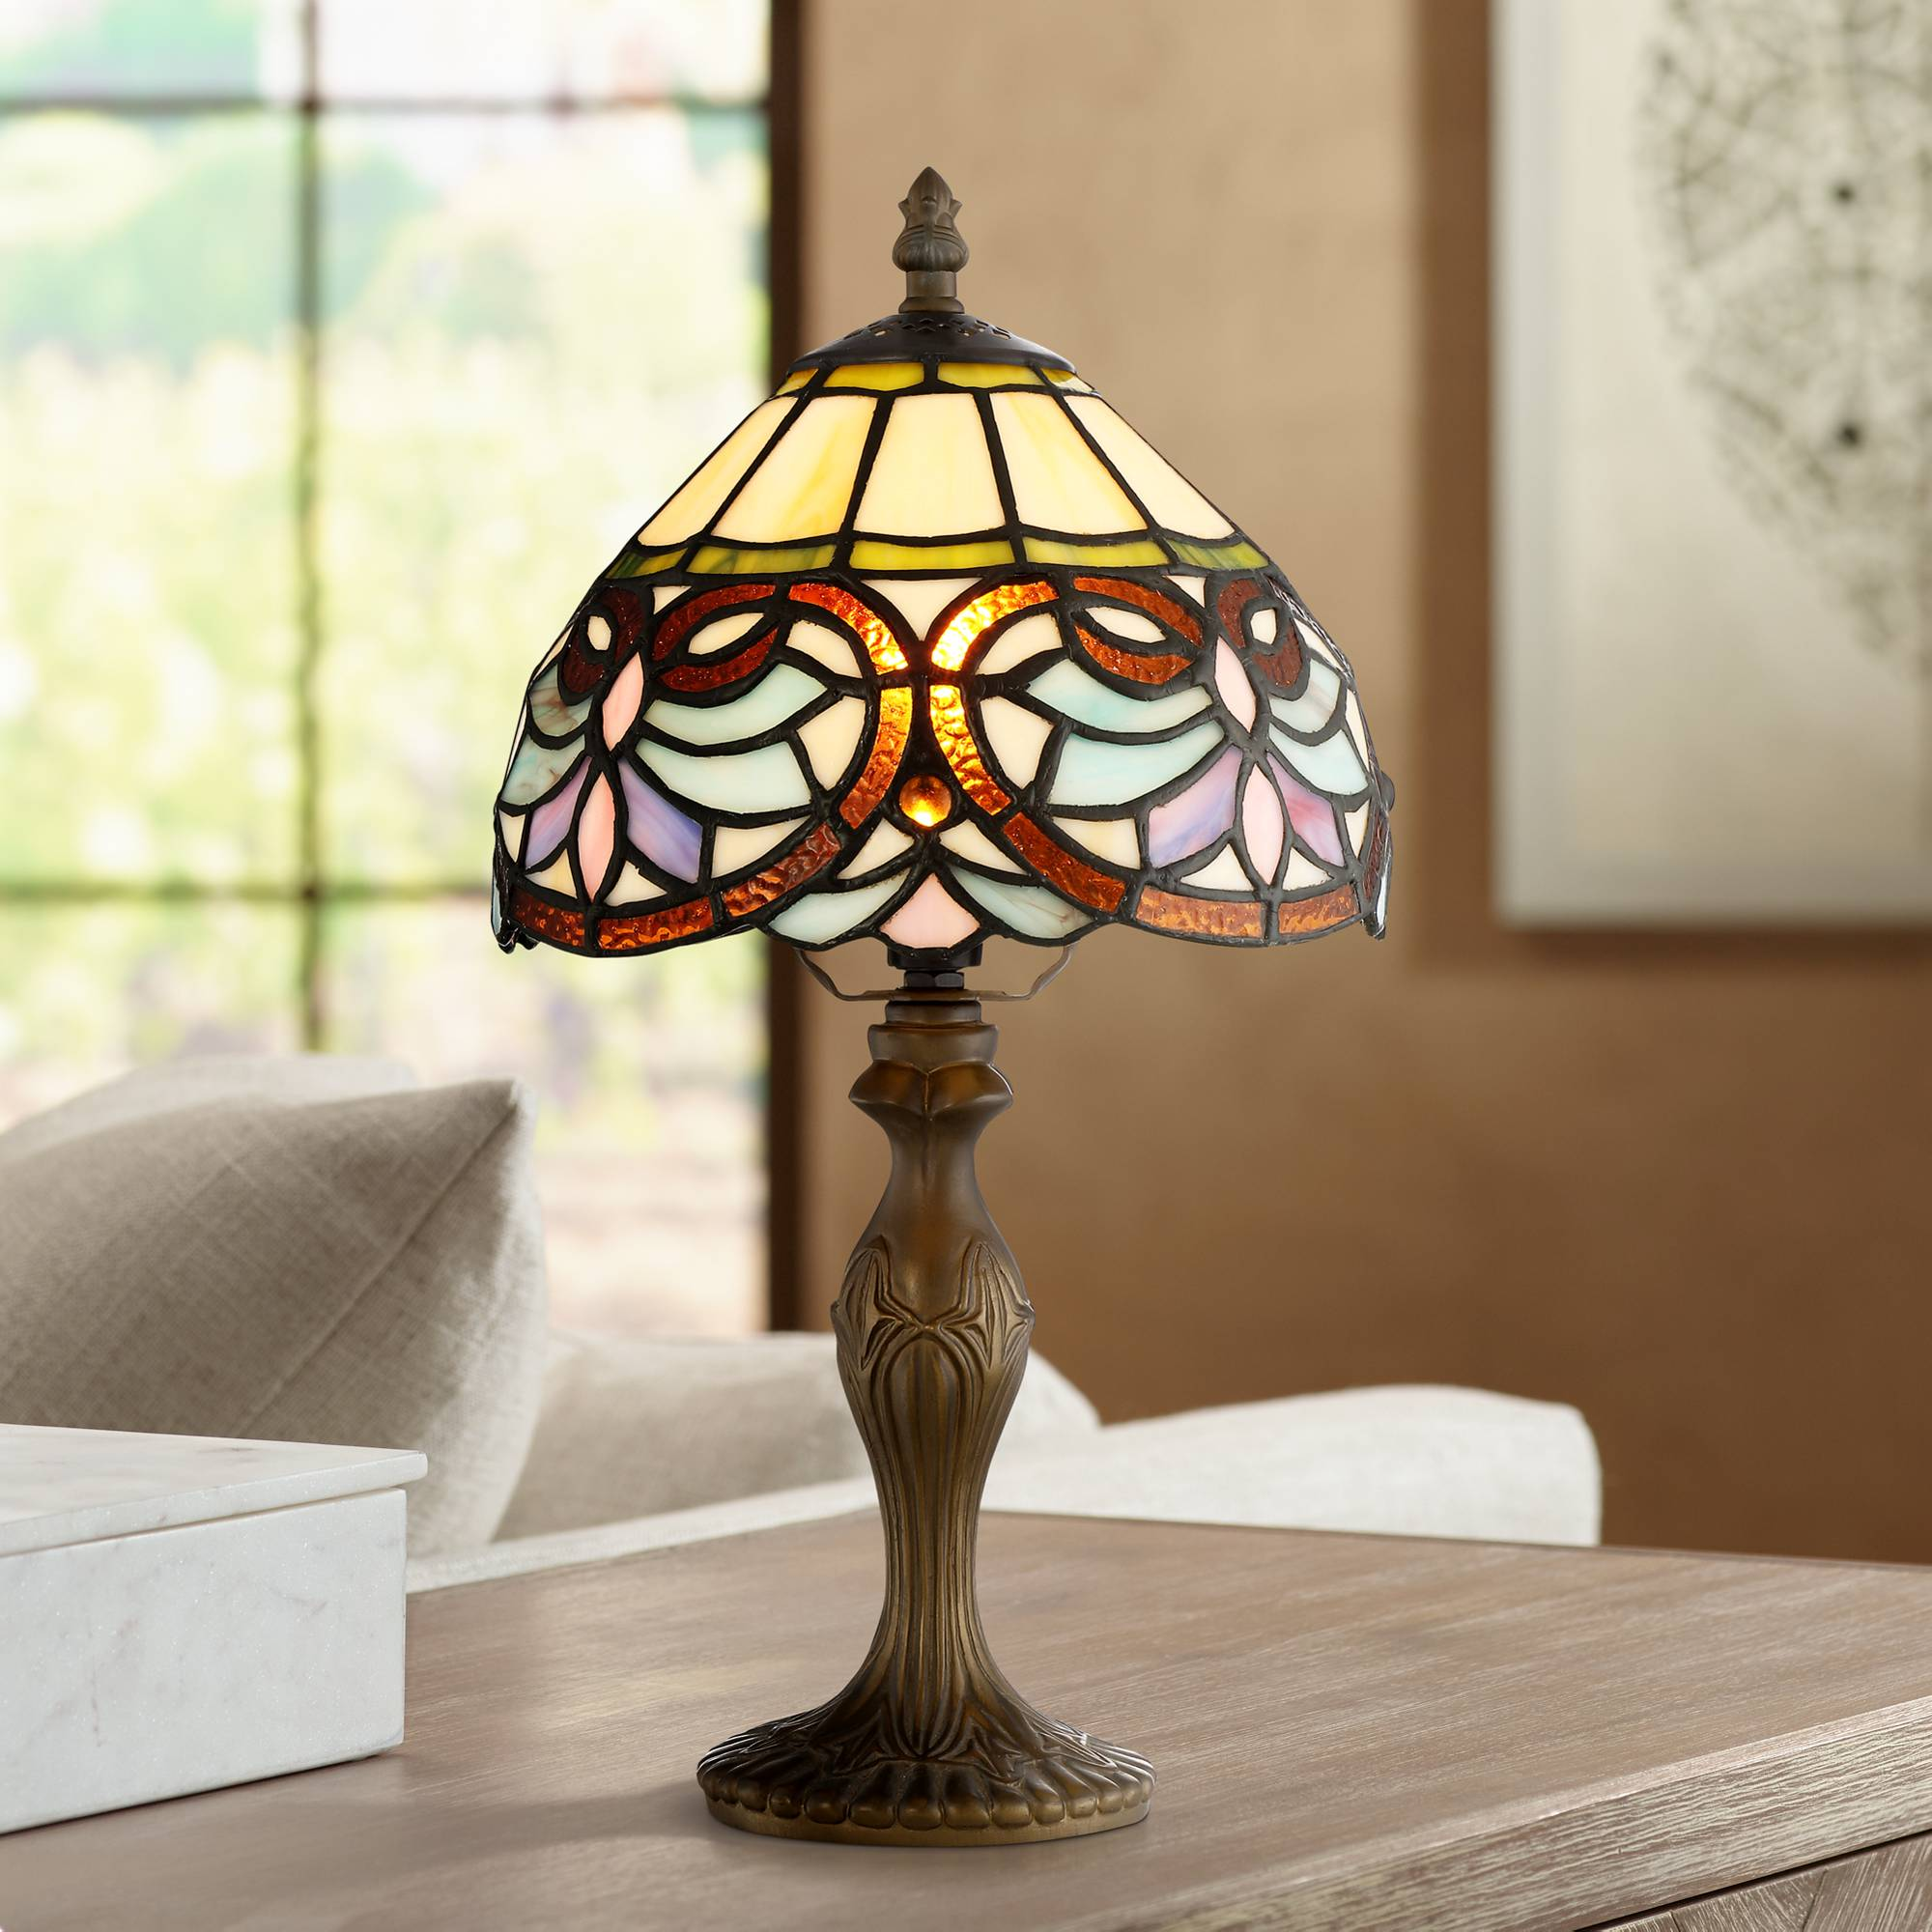 Details About Robert Louis Tiffany 13 1 2 High Marie Art Gl Table Lamp